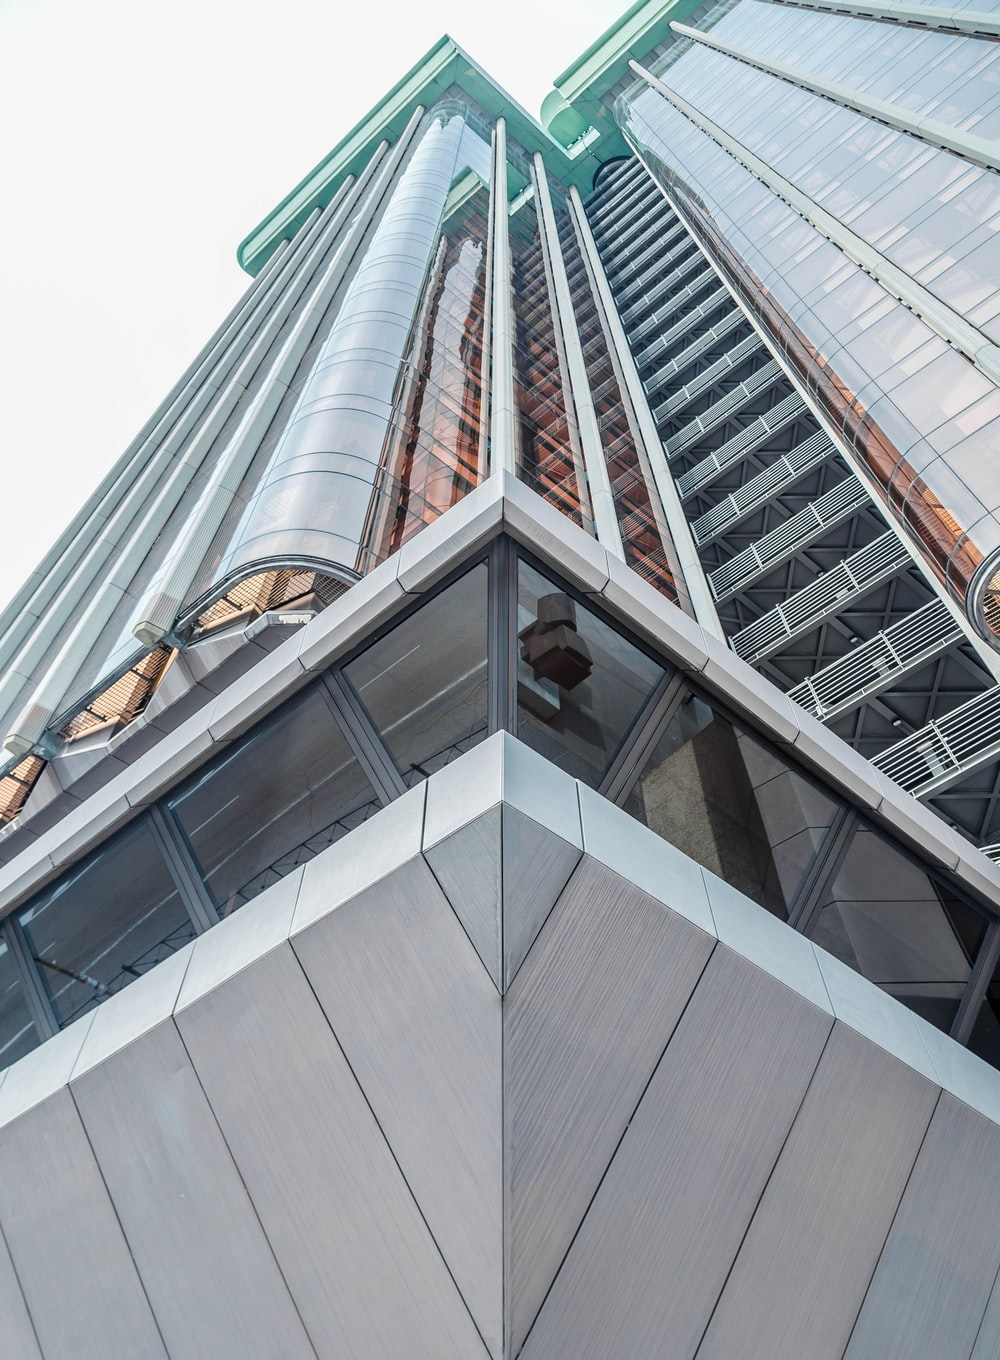 close-up photography of high-rise building